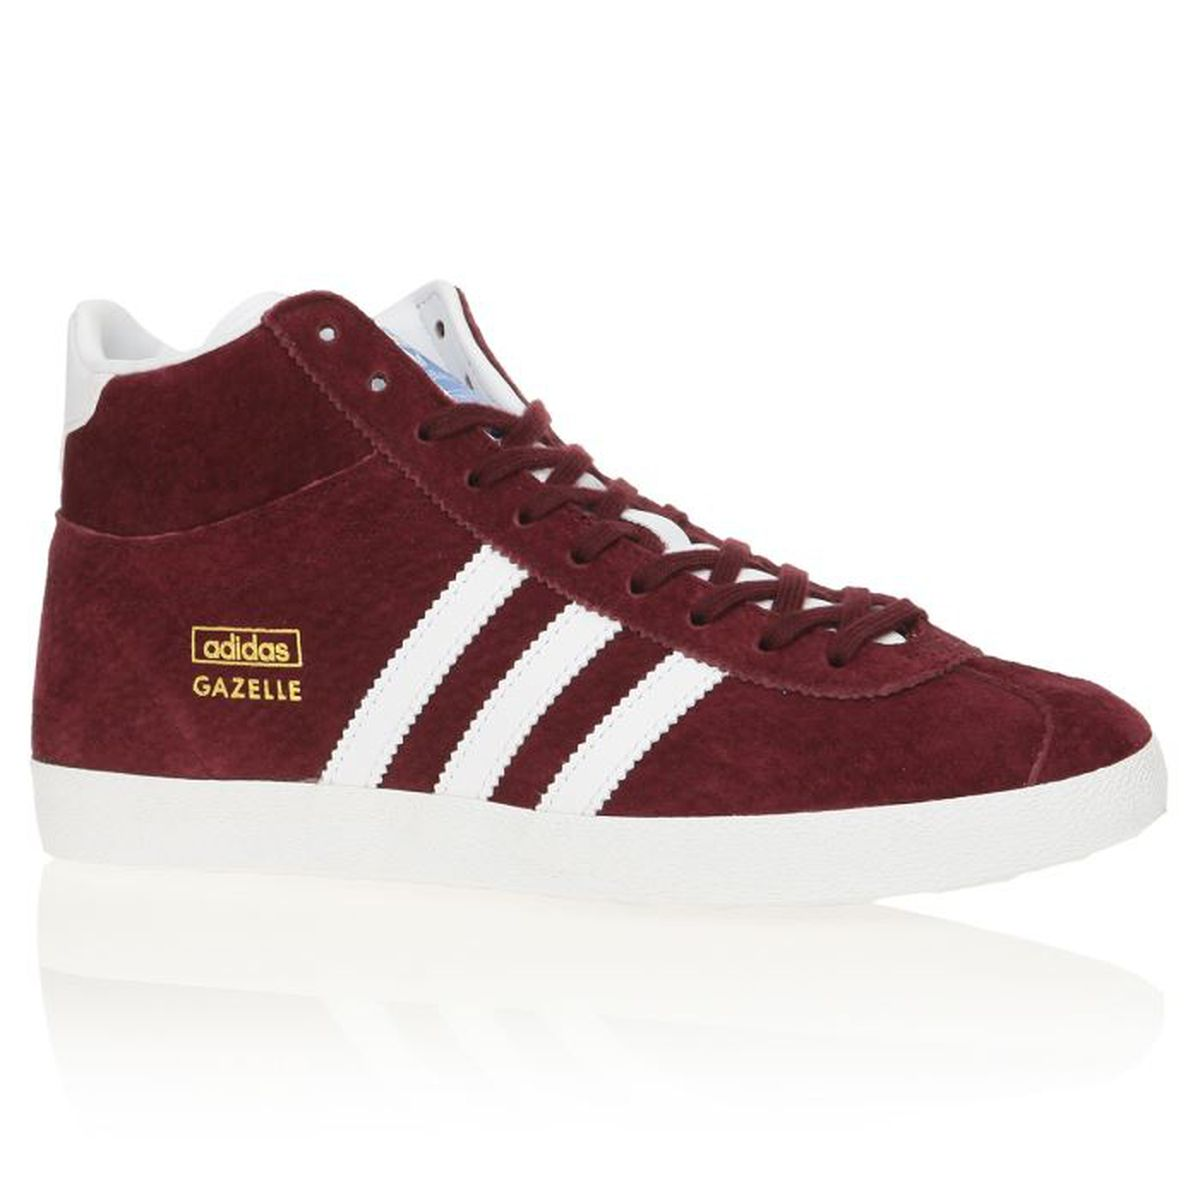 adidas gazelle bordeaux femme pas cher. Black Bedroom Furniture Sets. Home Design Ideas